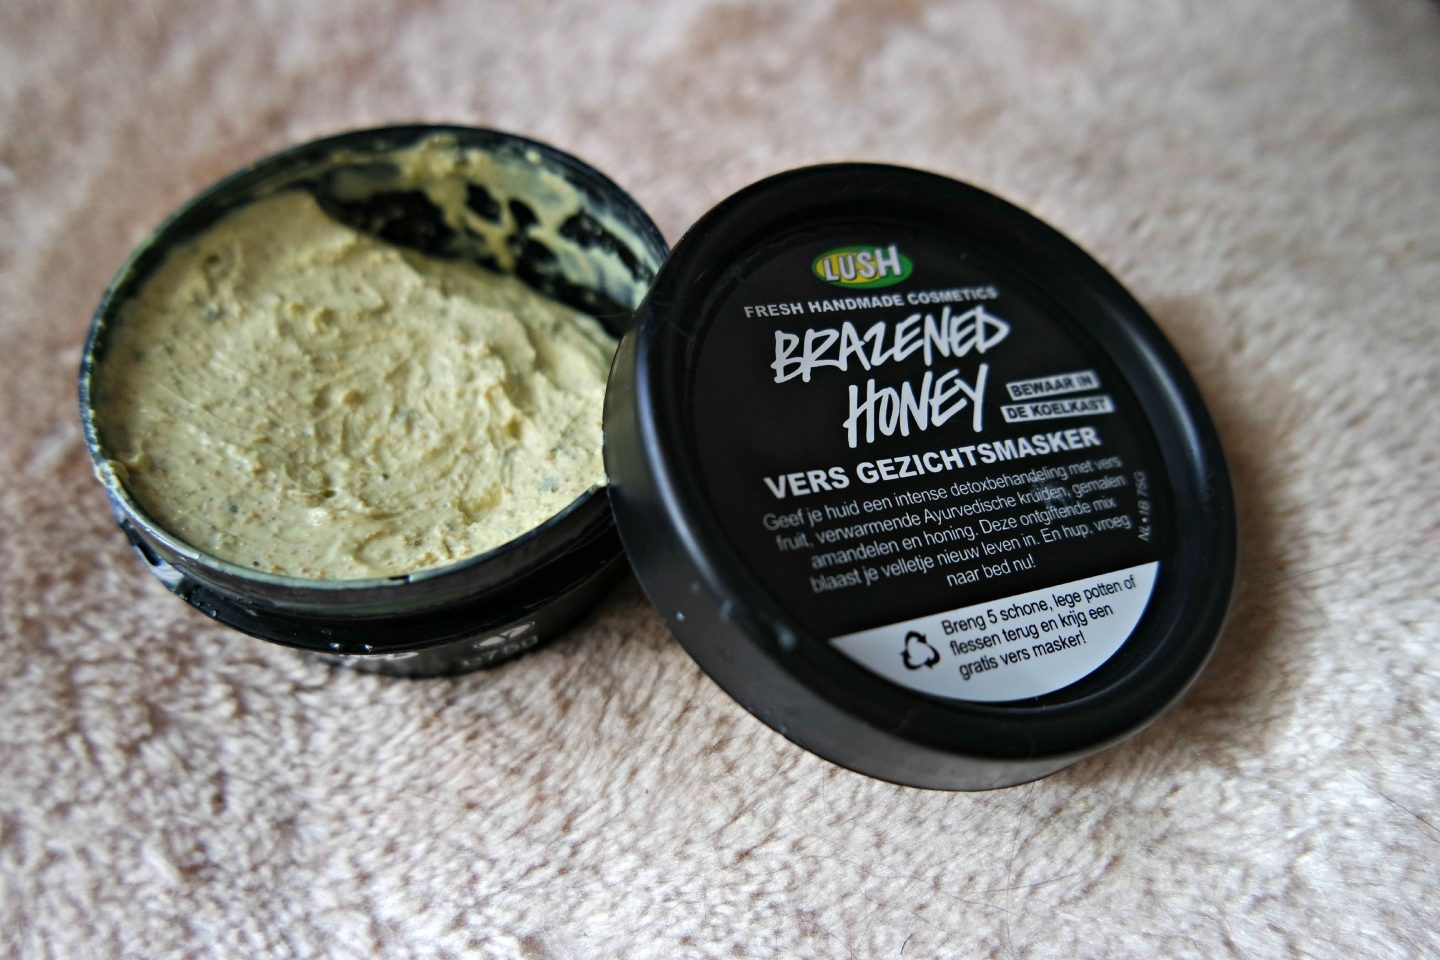 Lush Brazened Honey Fresh Facial Mask